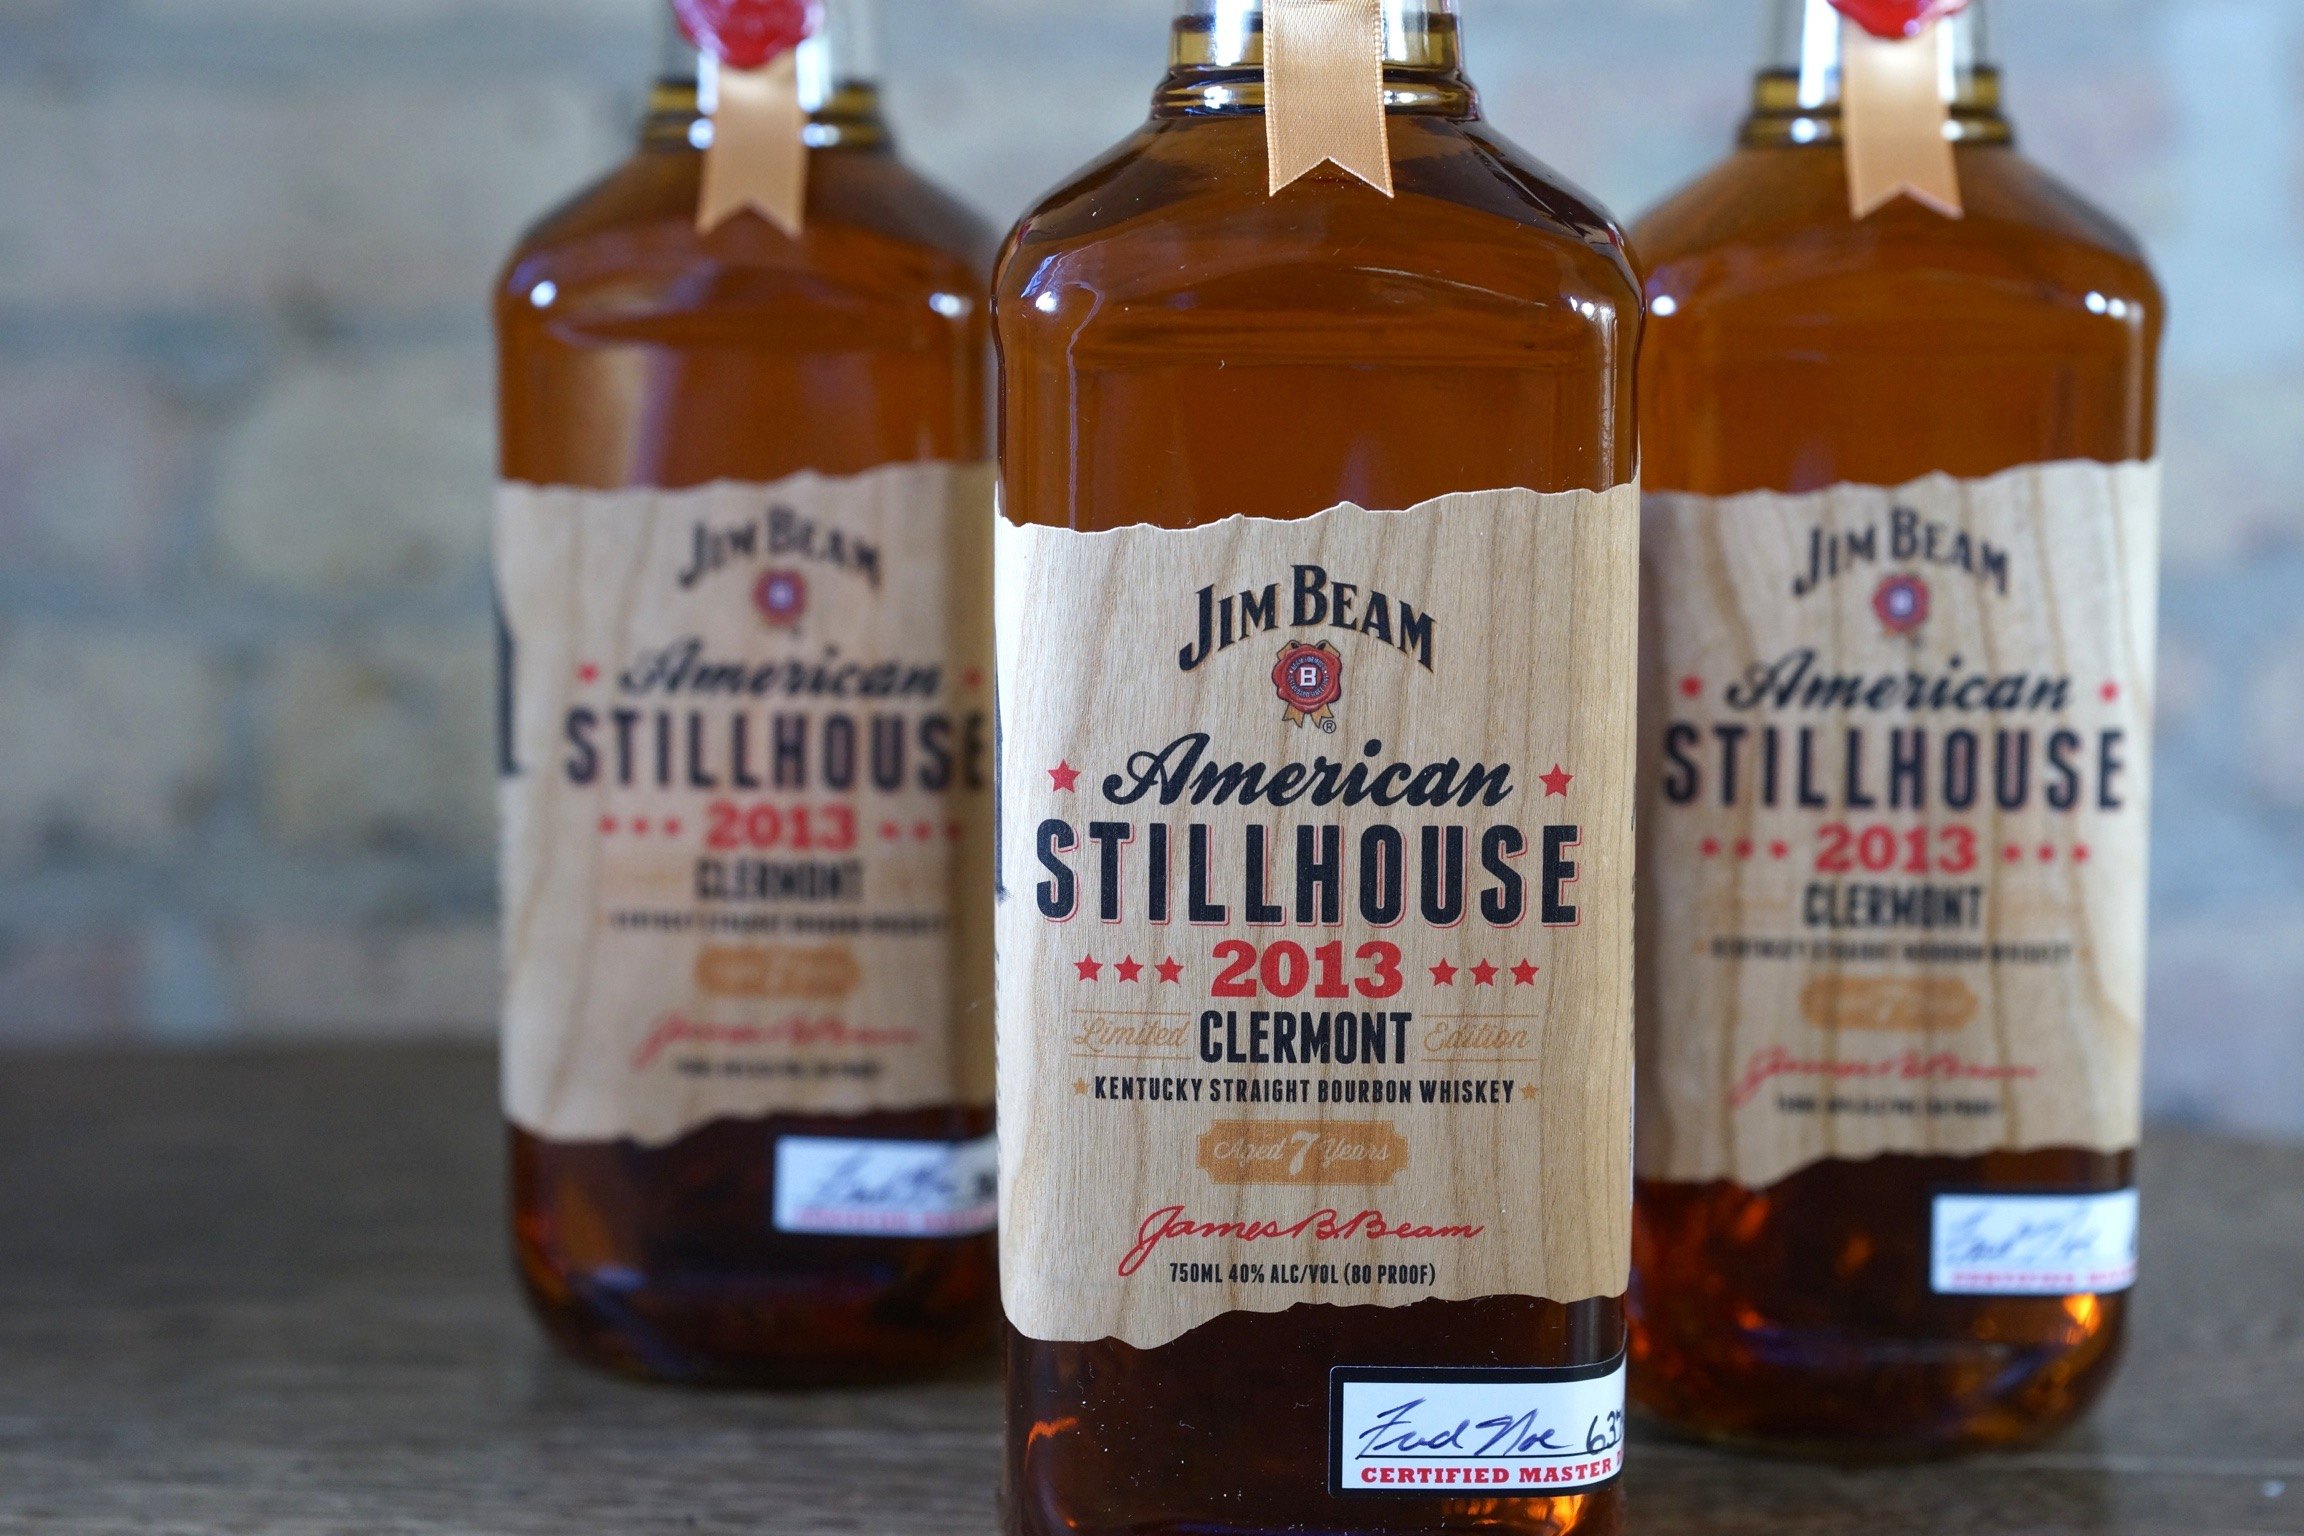 Cherry Wood Jim Beam Stillhouse Label